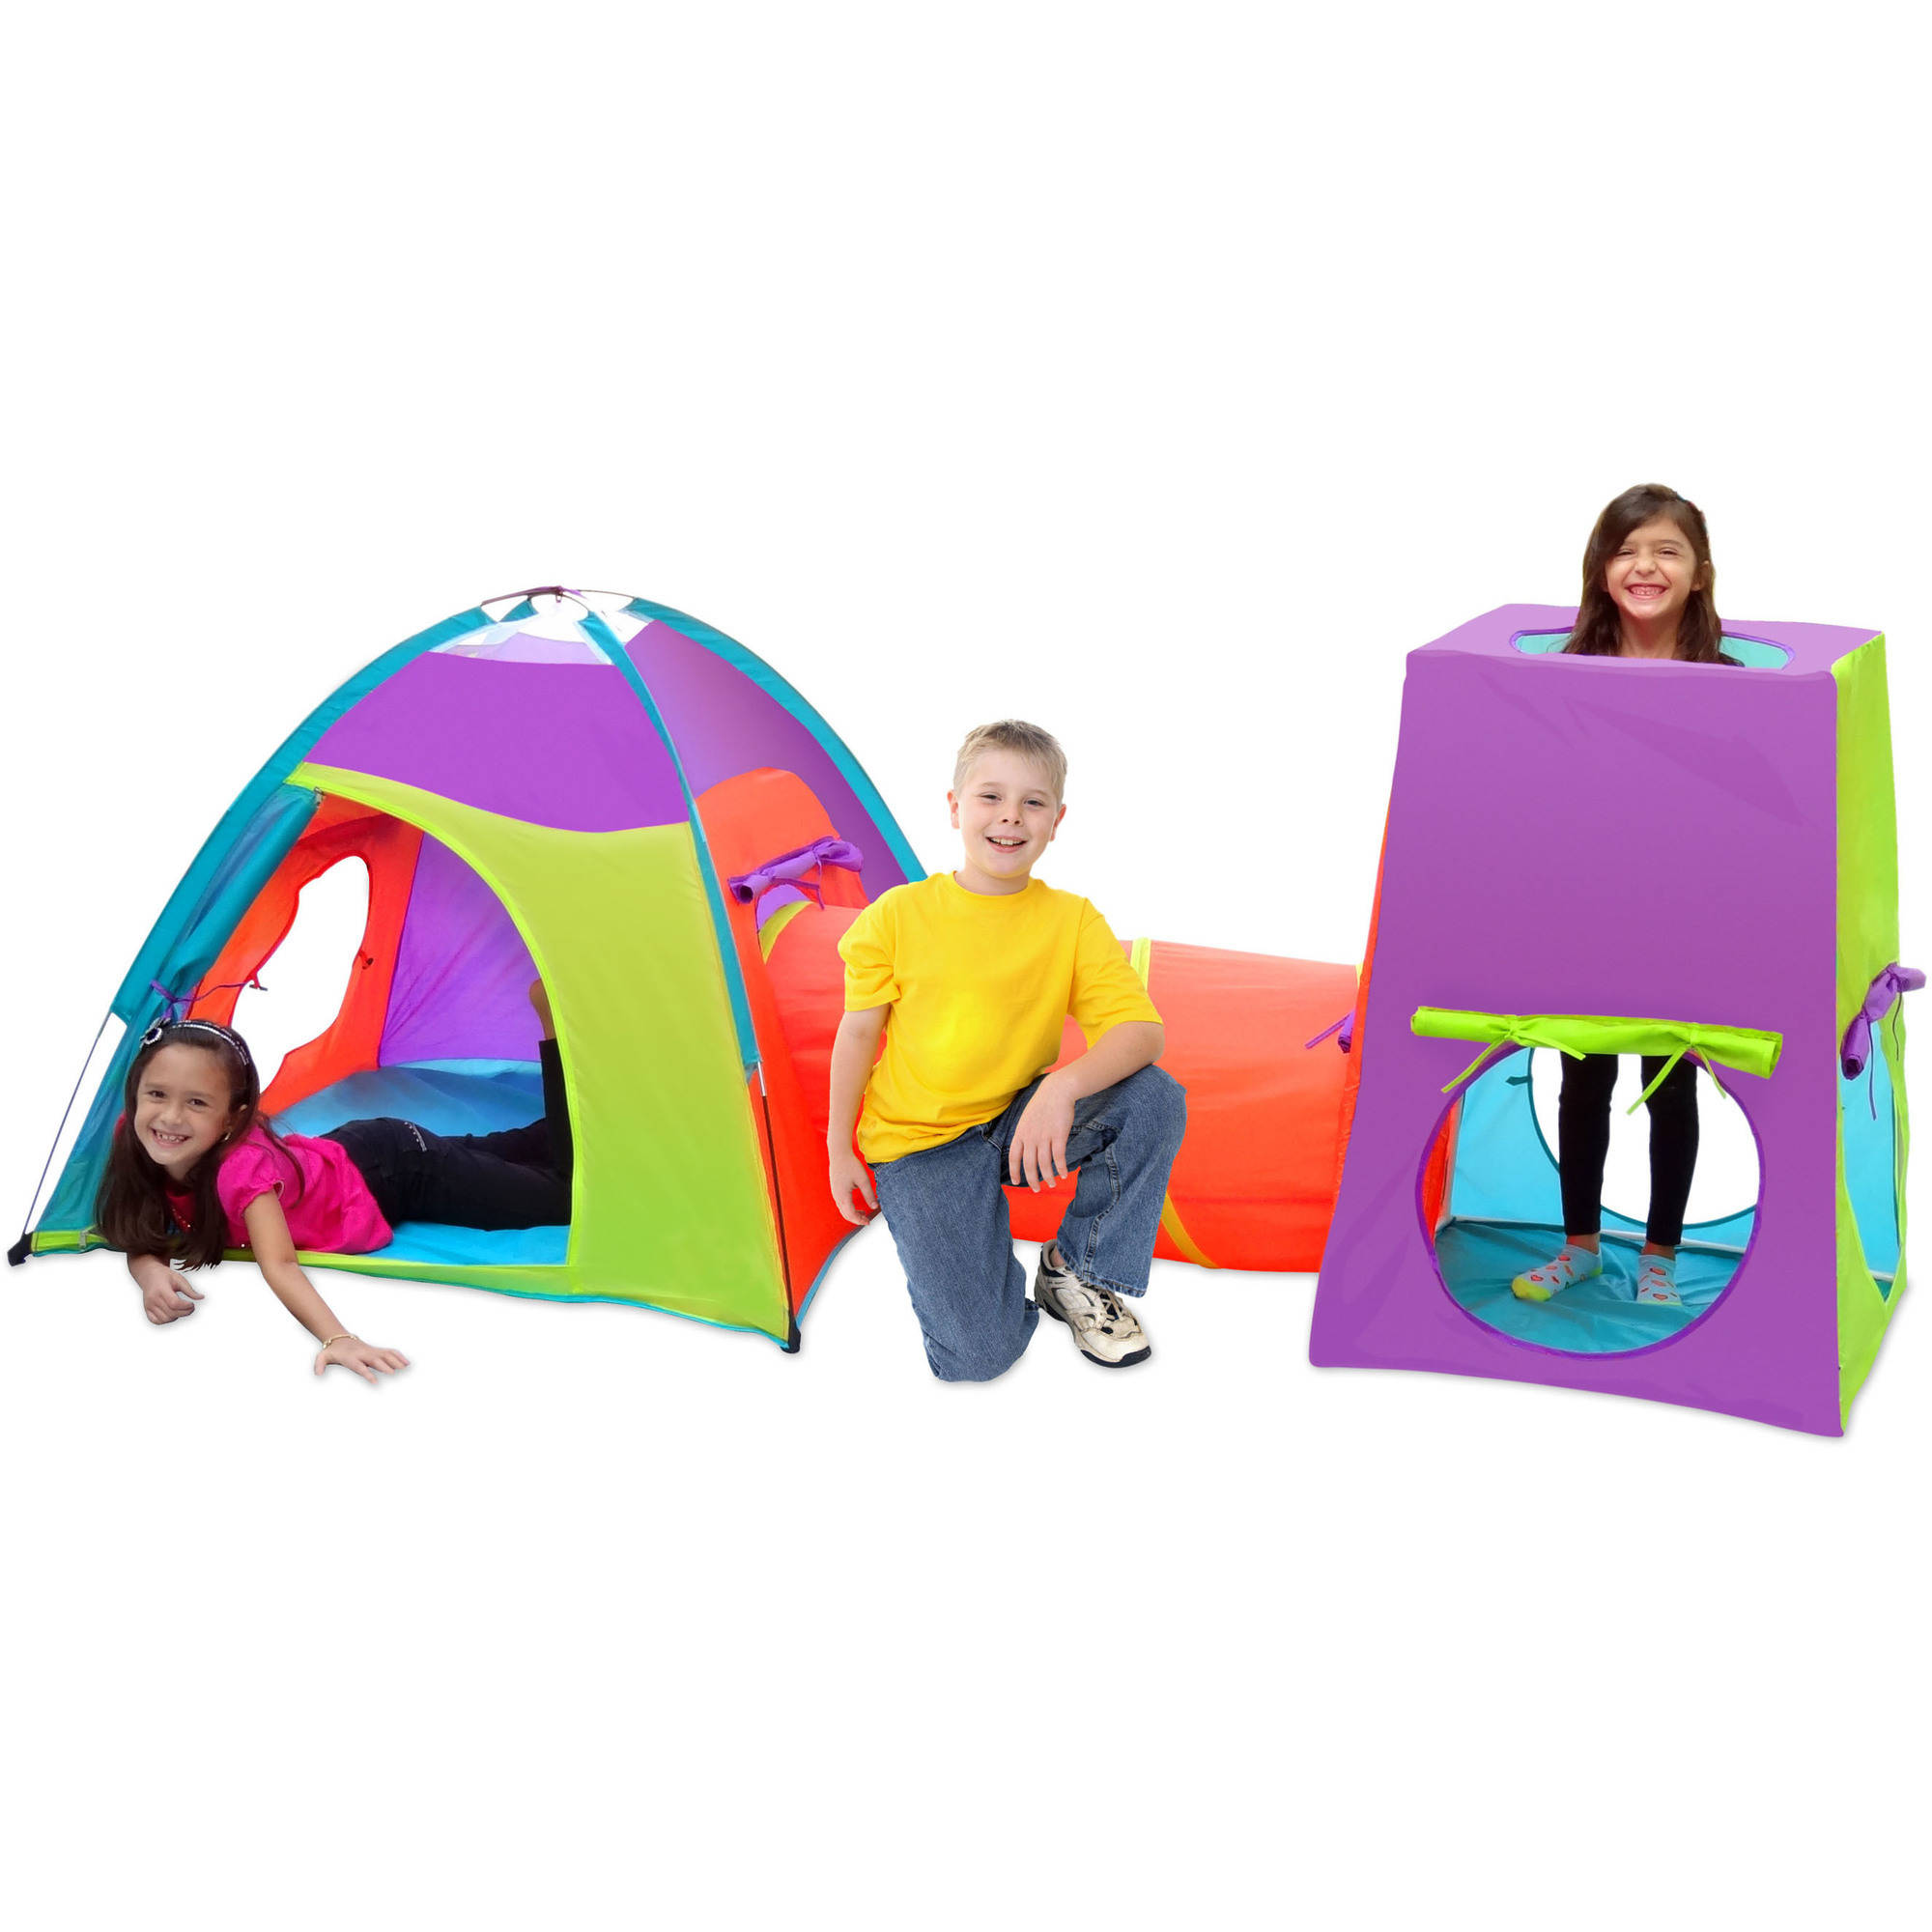 sc 1 st  Walmart : toddler tent and tunnel - memphite.com